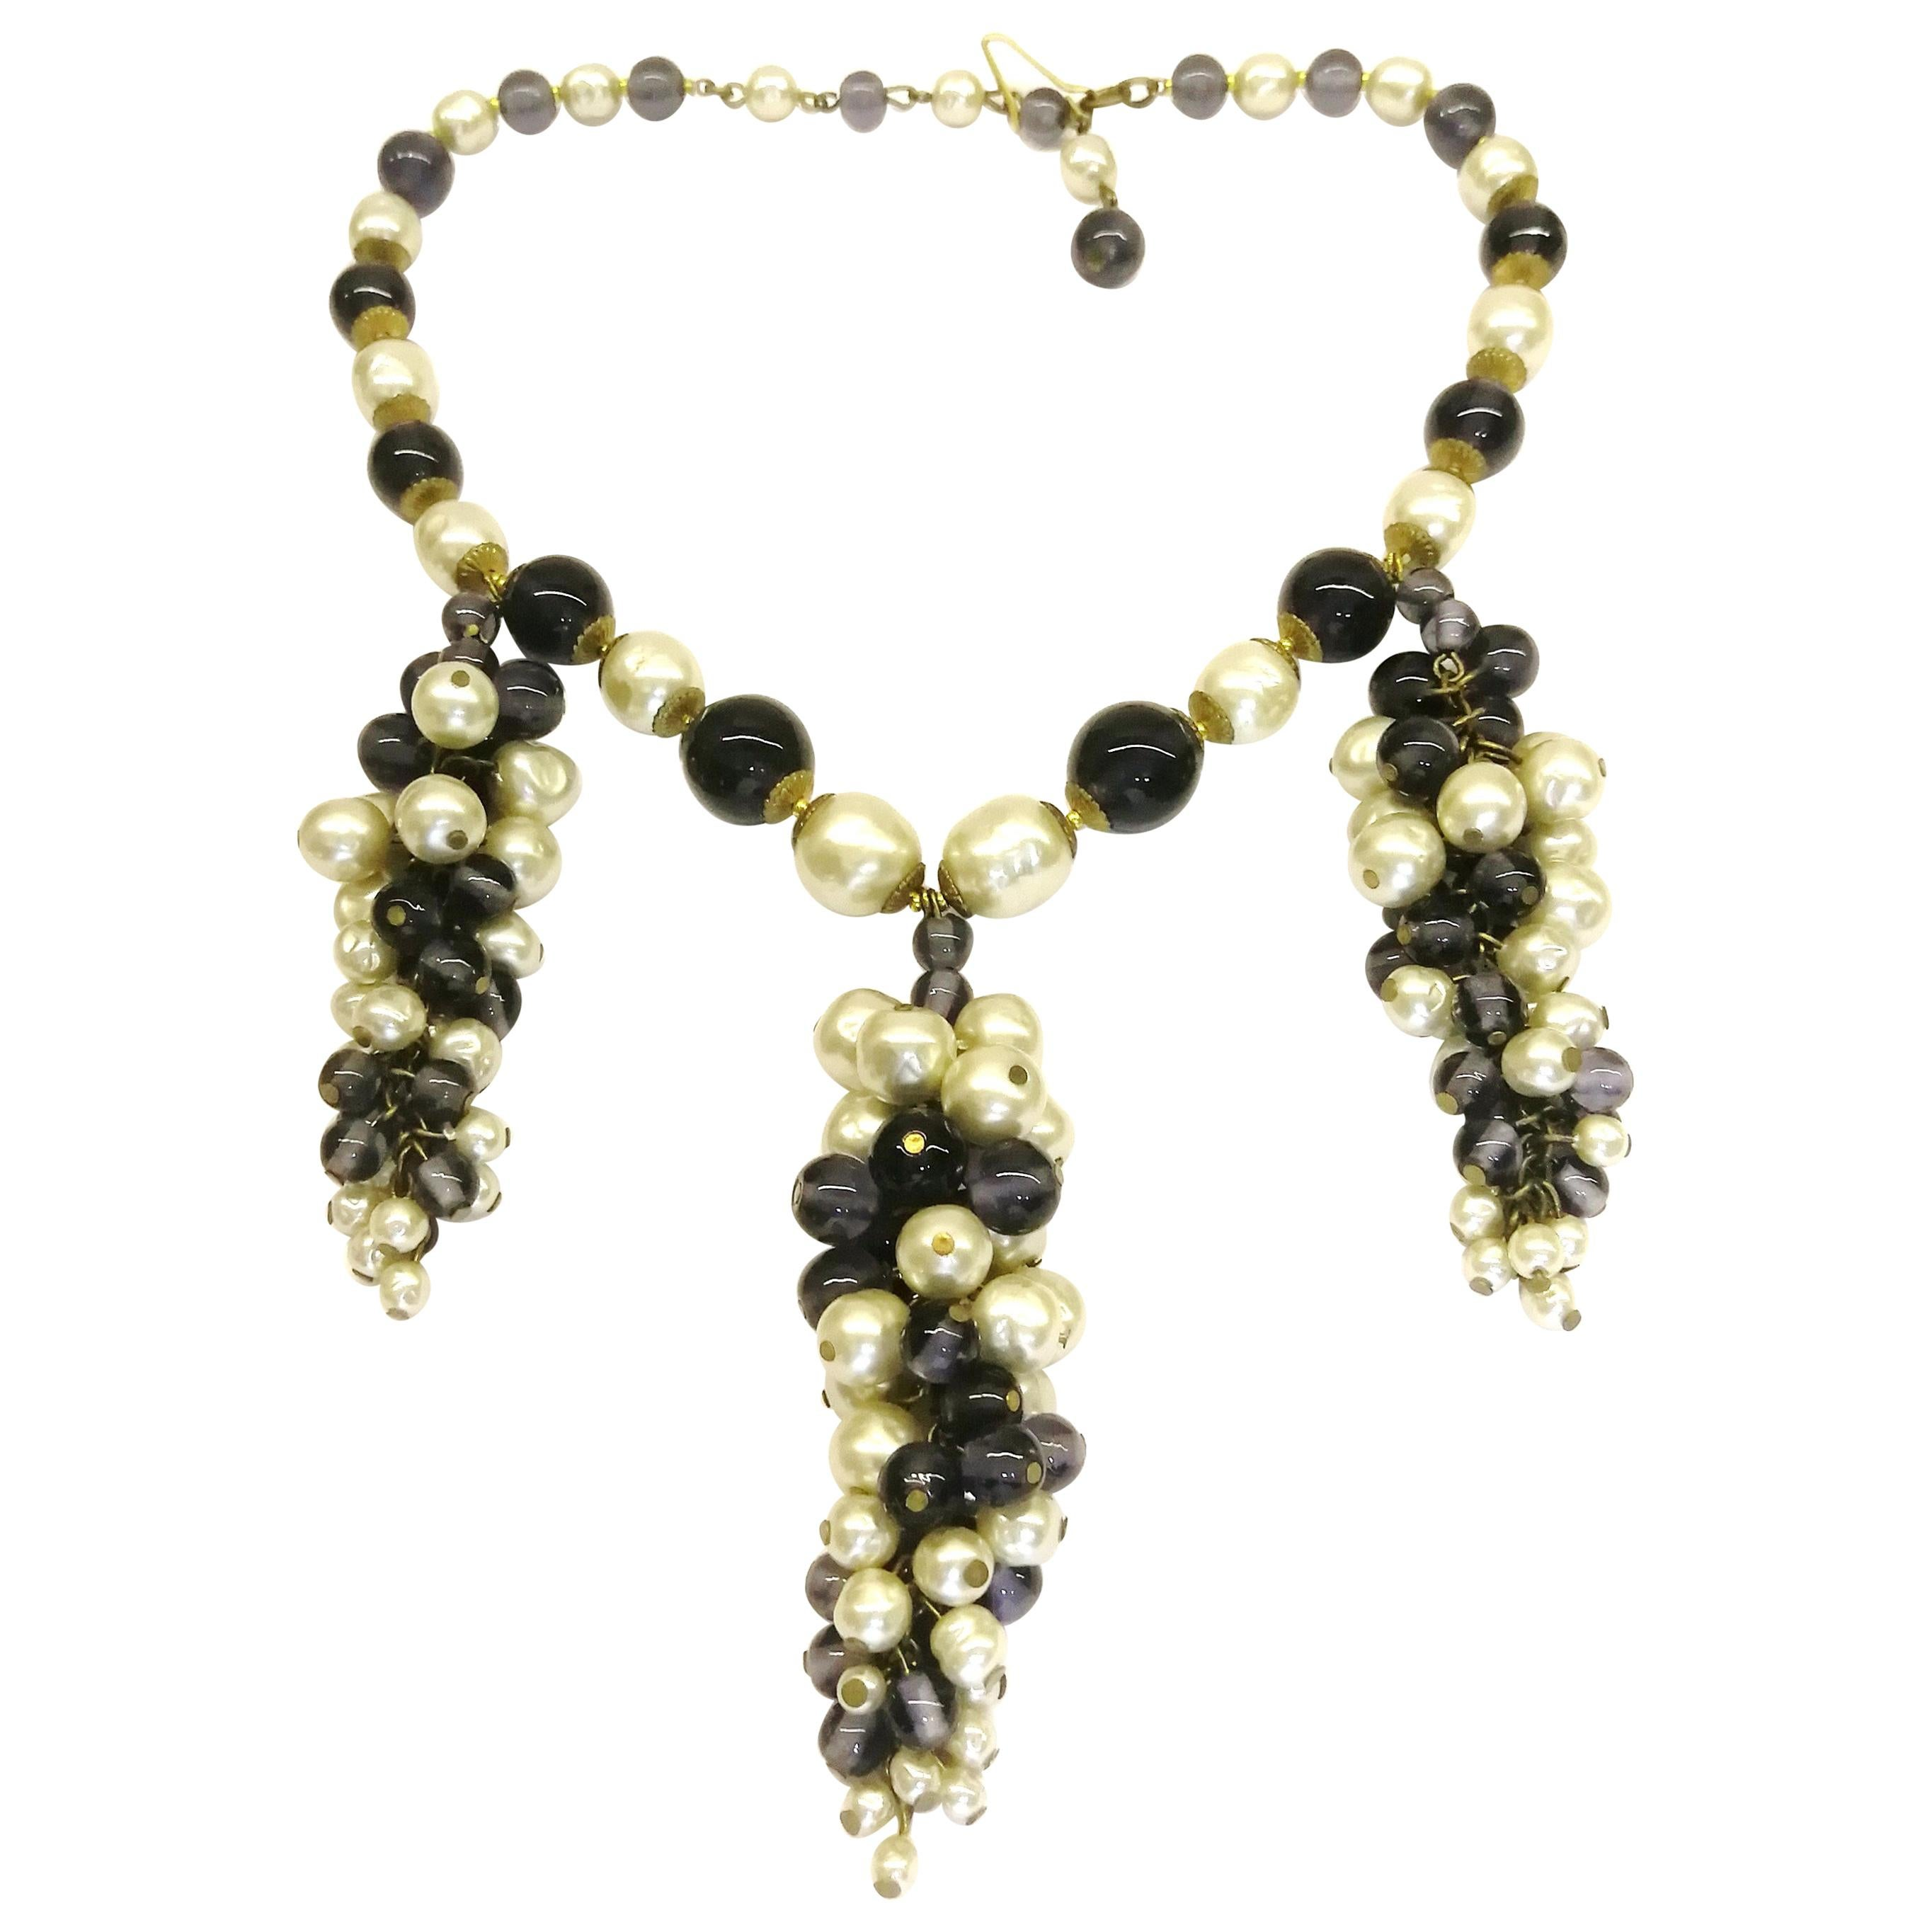 Stunning Gold Tone Chain Link Necklace with Large Faux Pearl Droplet Pendants